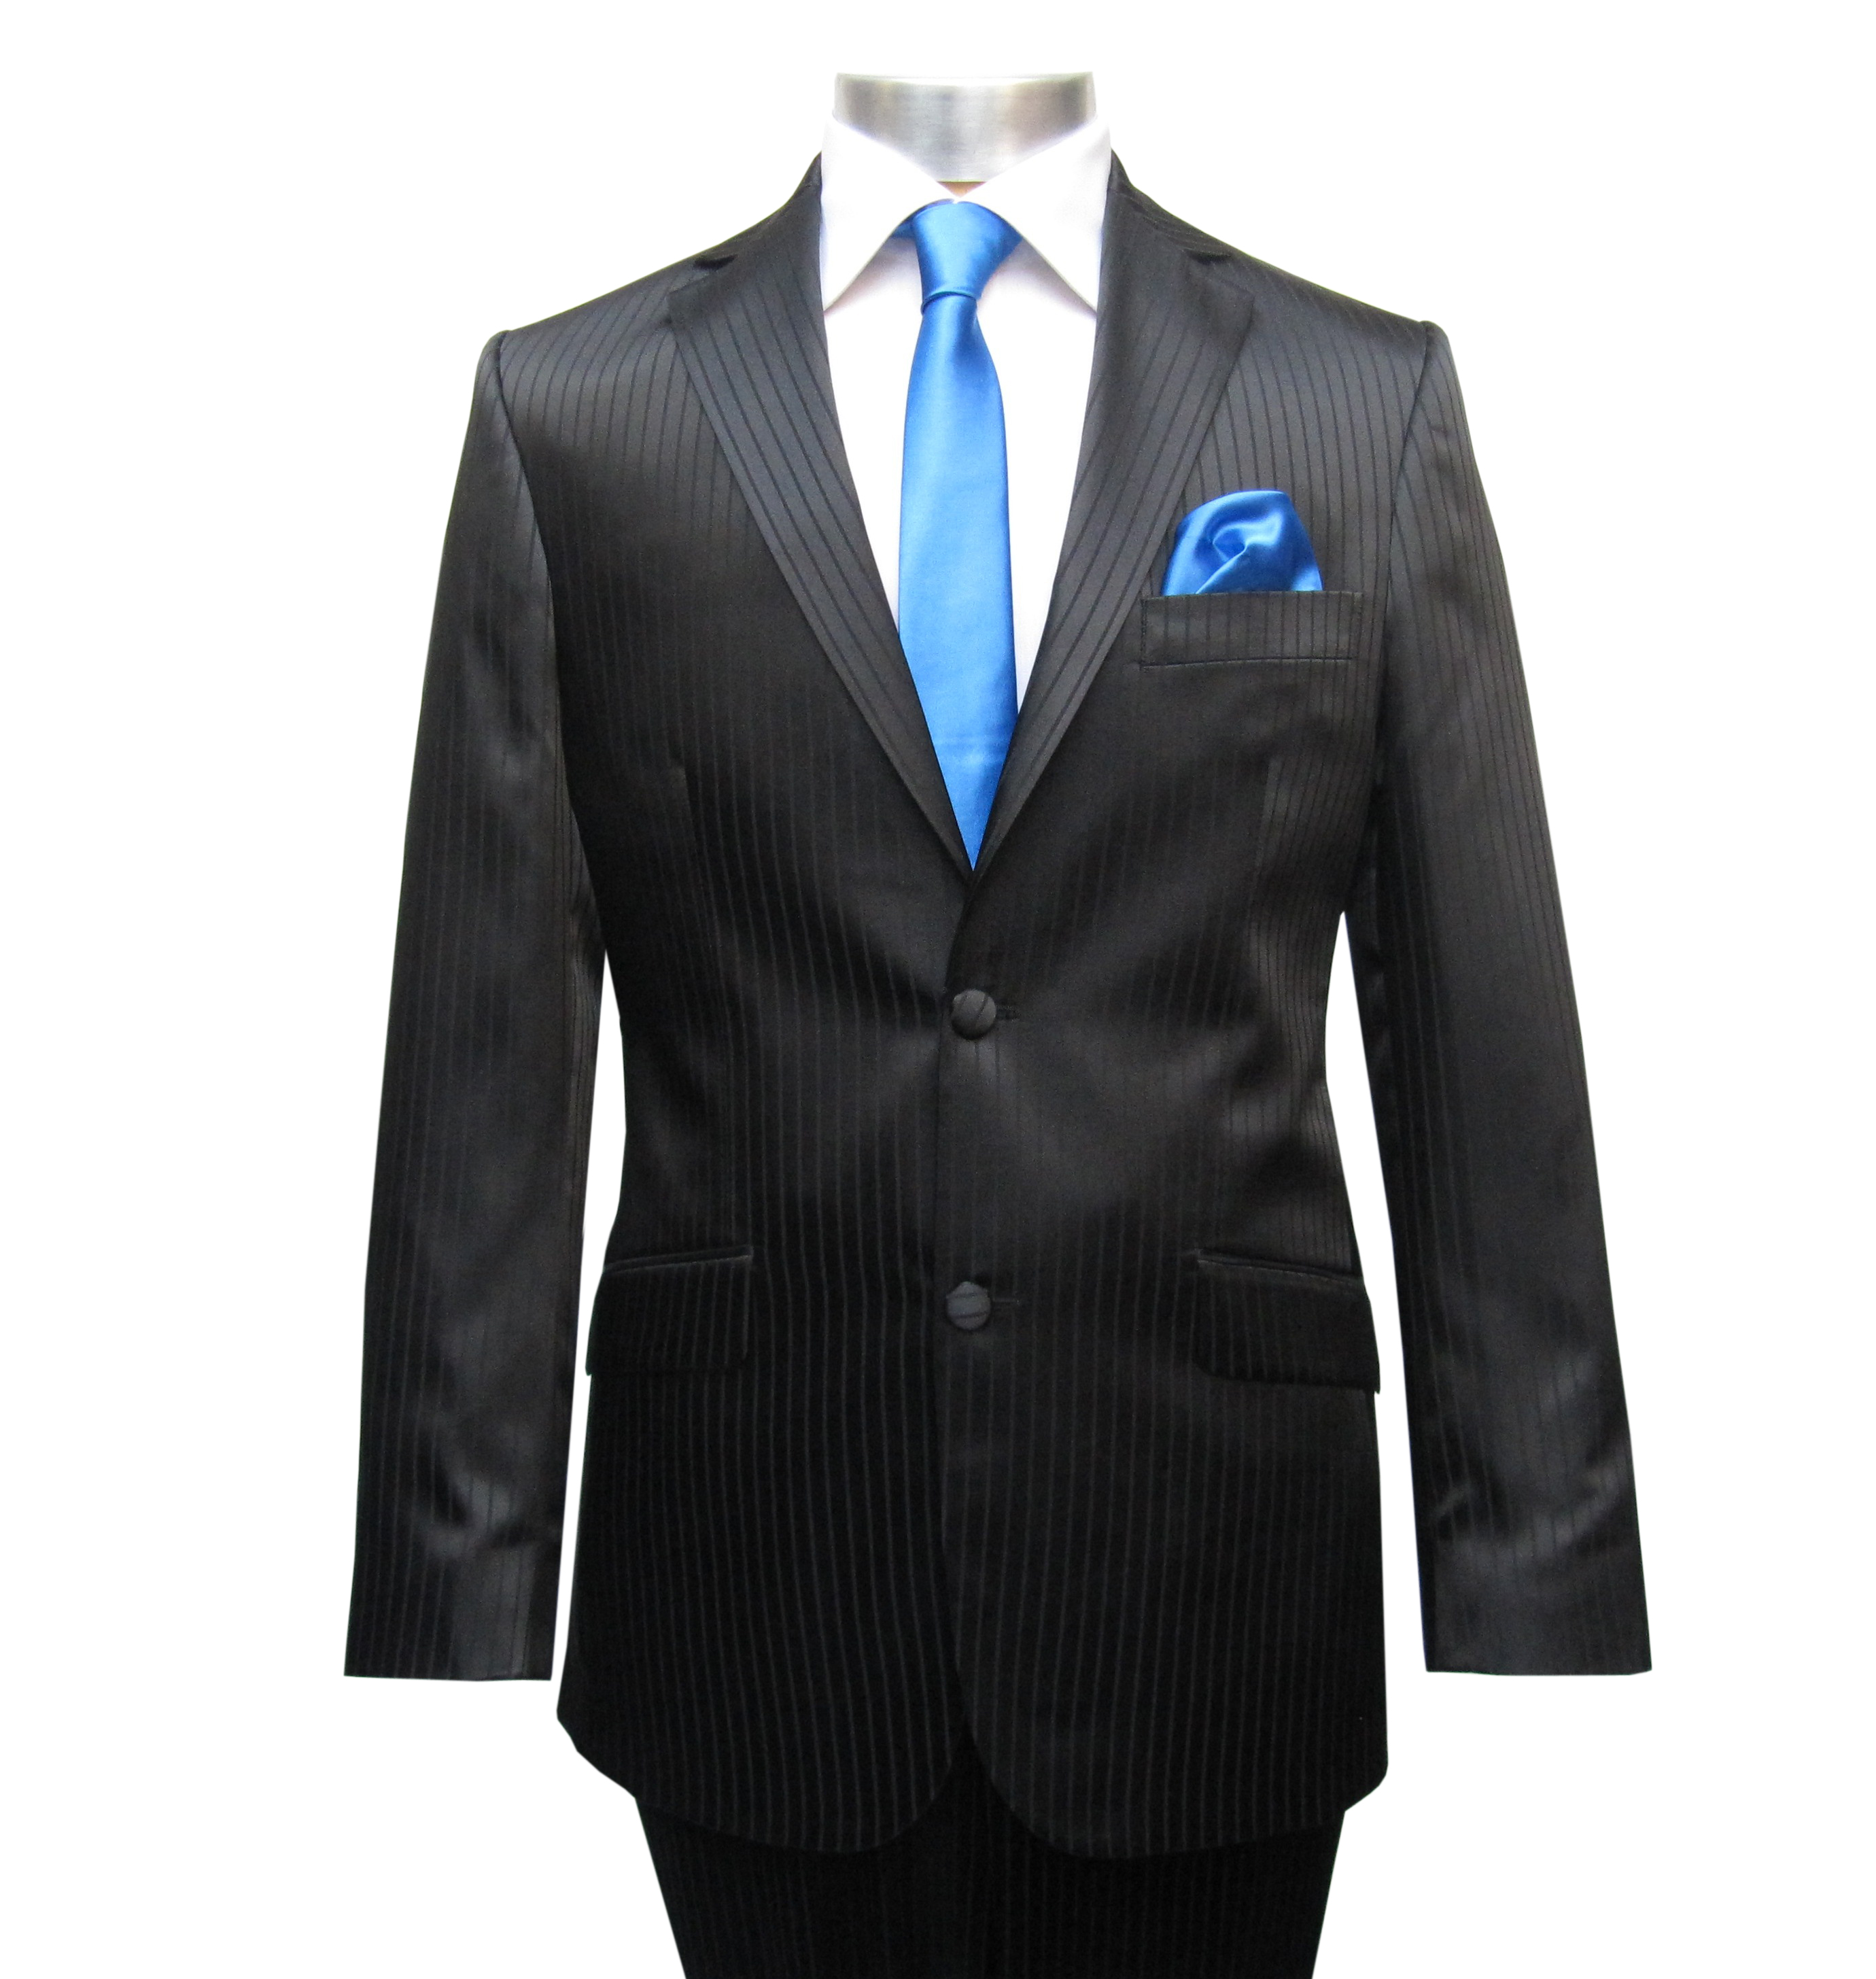 Cut Anzug Hochzeit Muga Wedding Suit Wedding Suit